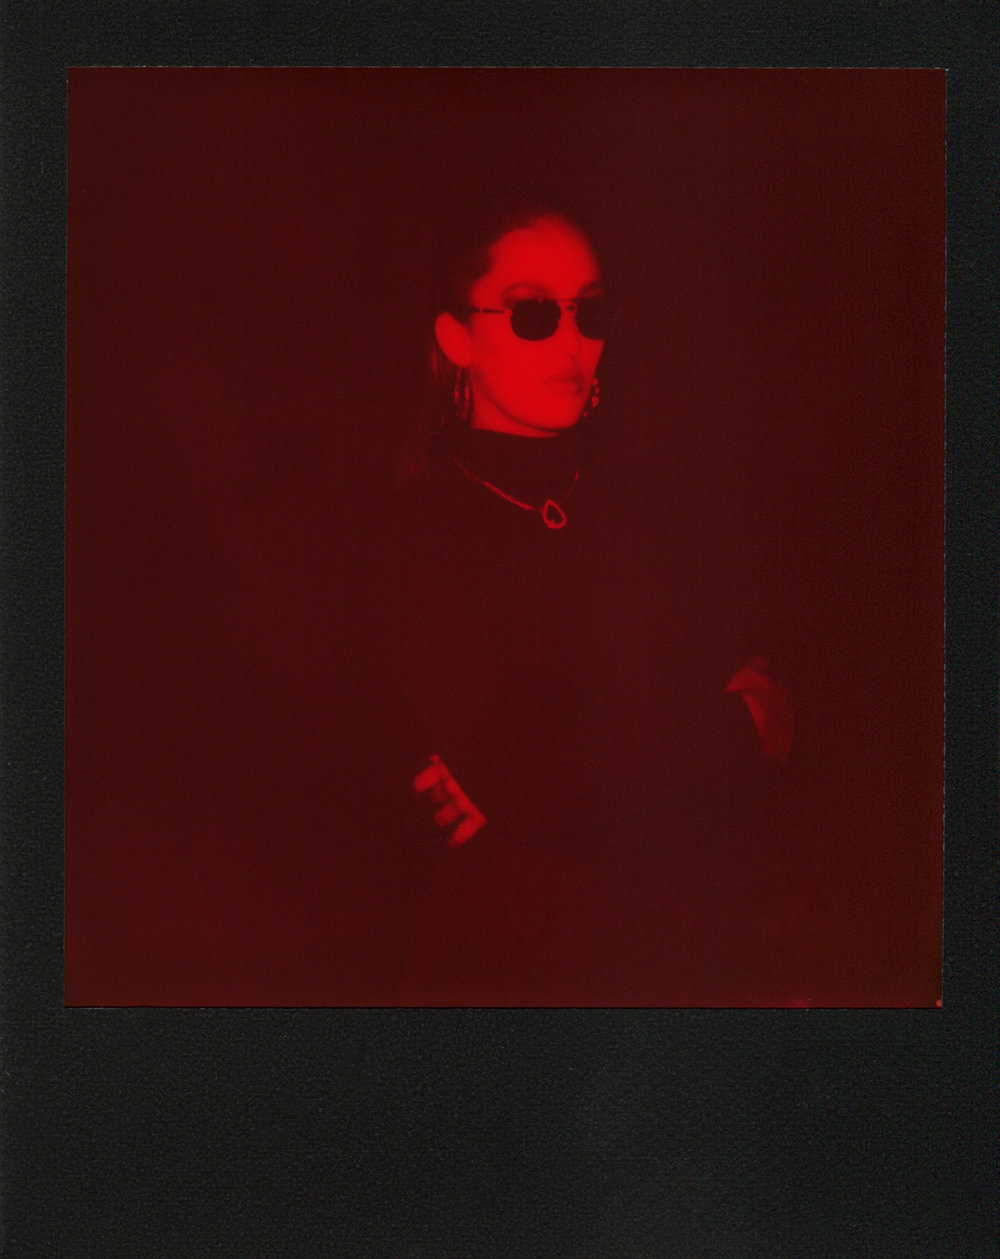 Riley-Red-Polaroid-1-casenruiz.jpg